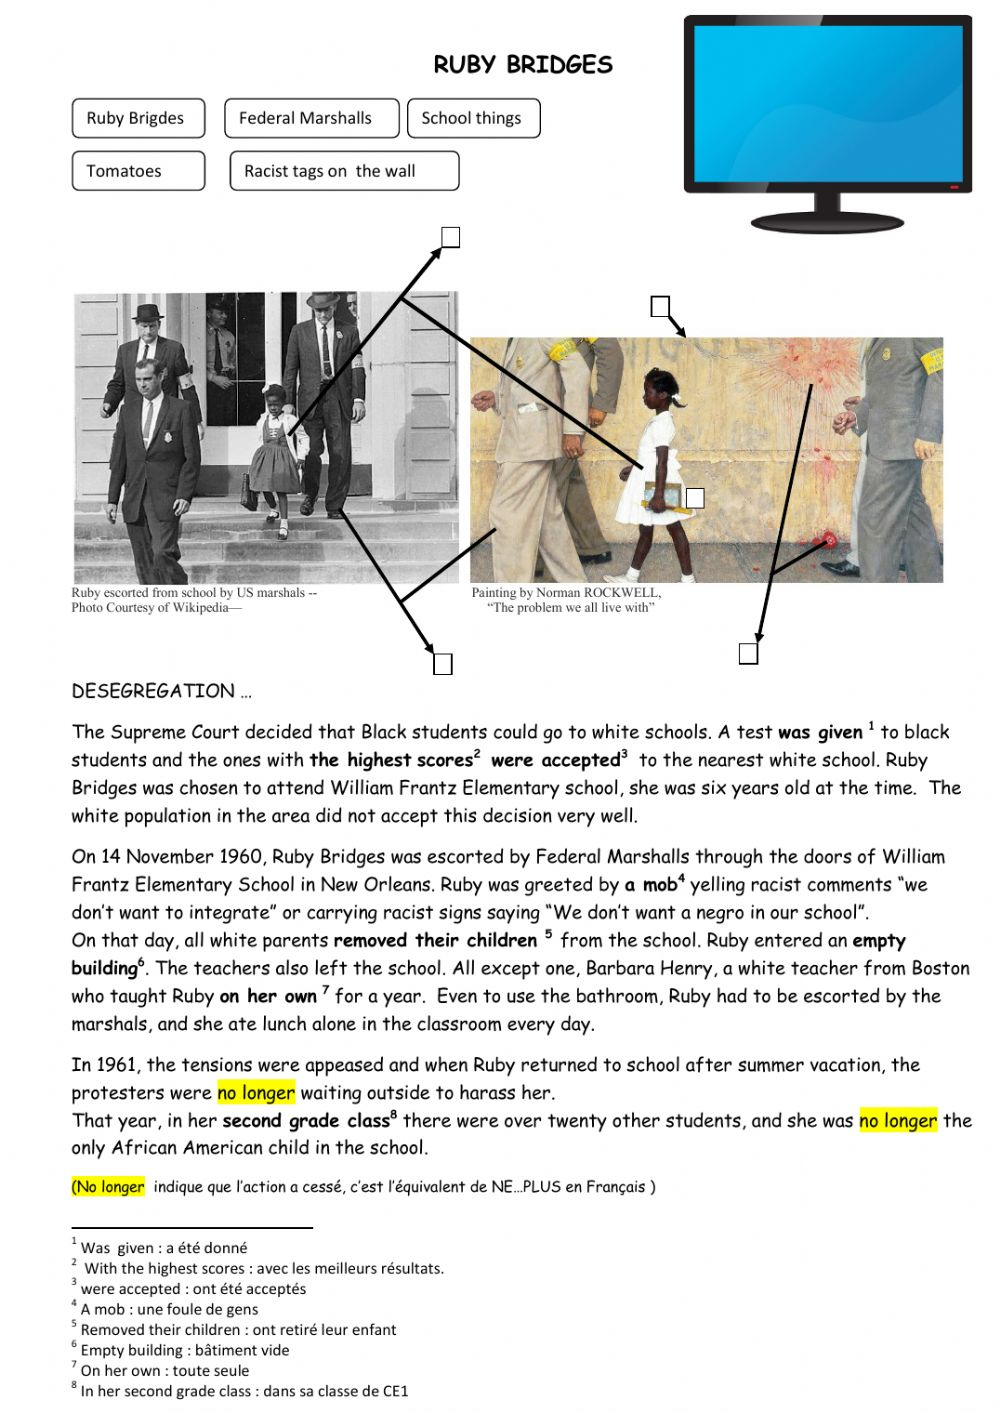 hight resolution of Ruby Bridges in the 60s - George Floyd today worksheet